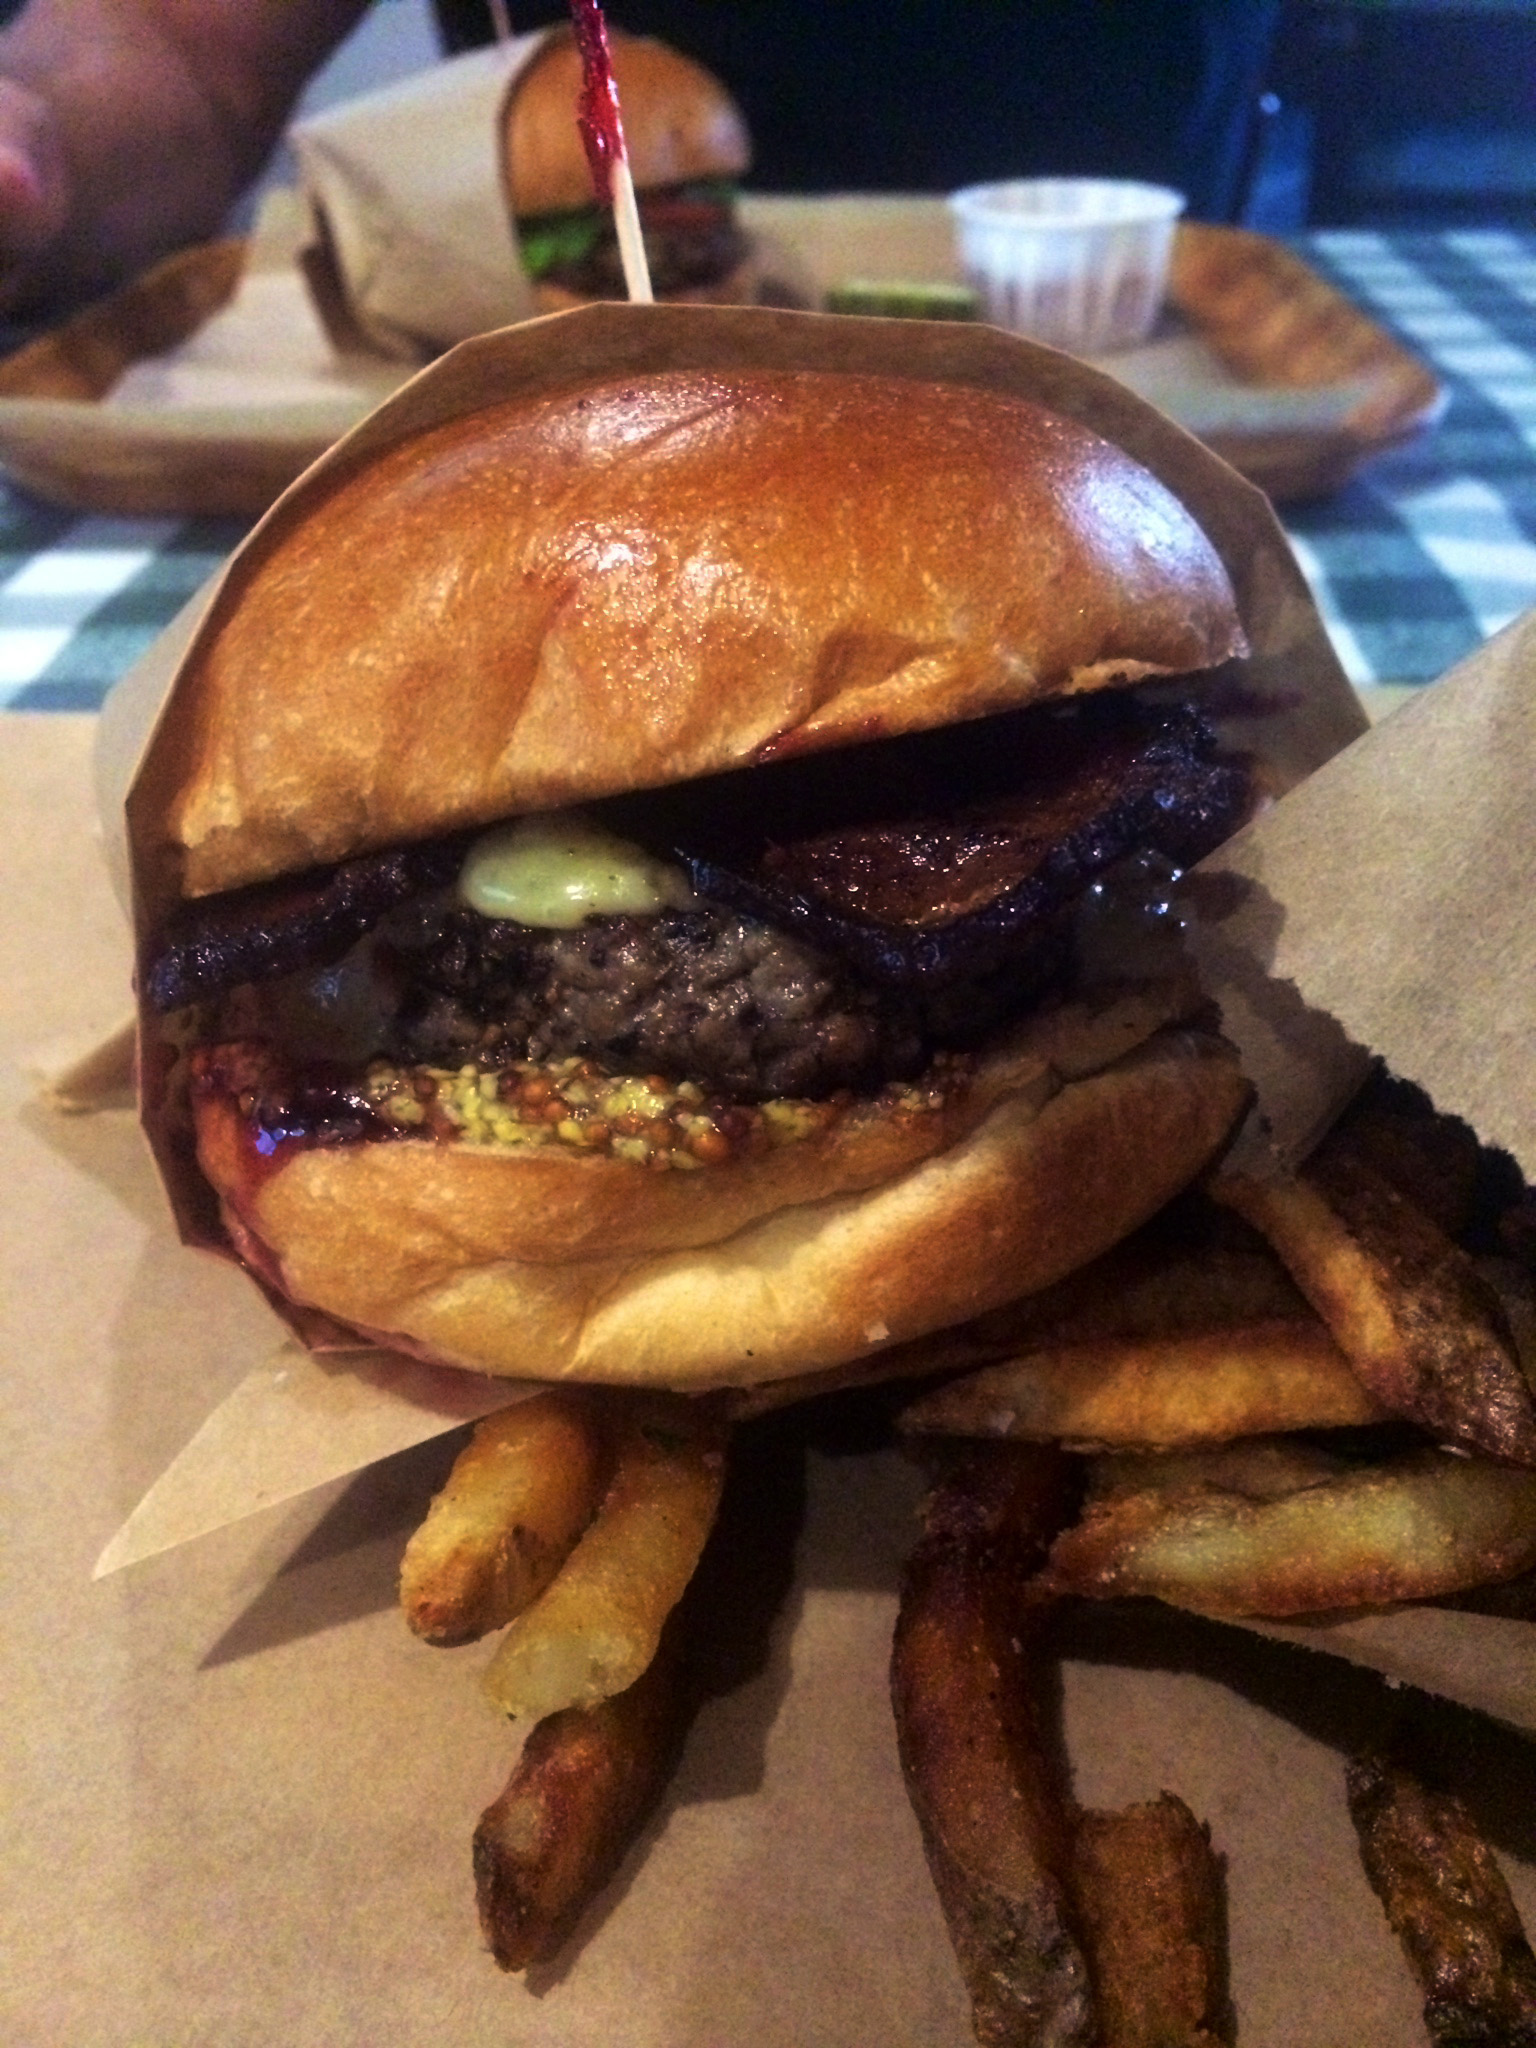 The Whiskey Burger from Rodeo Goat in Ft. Worth!